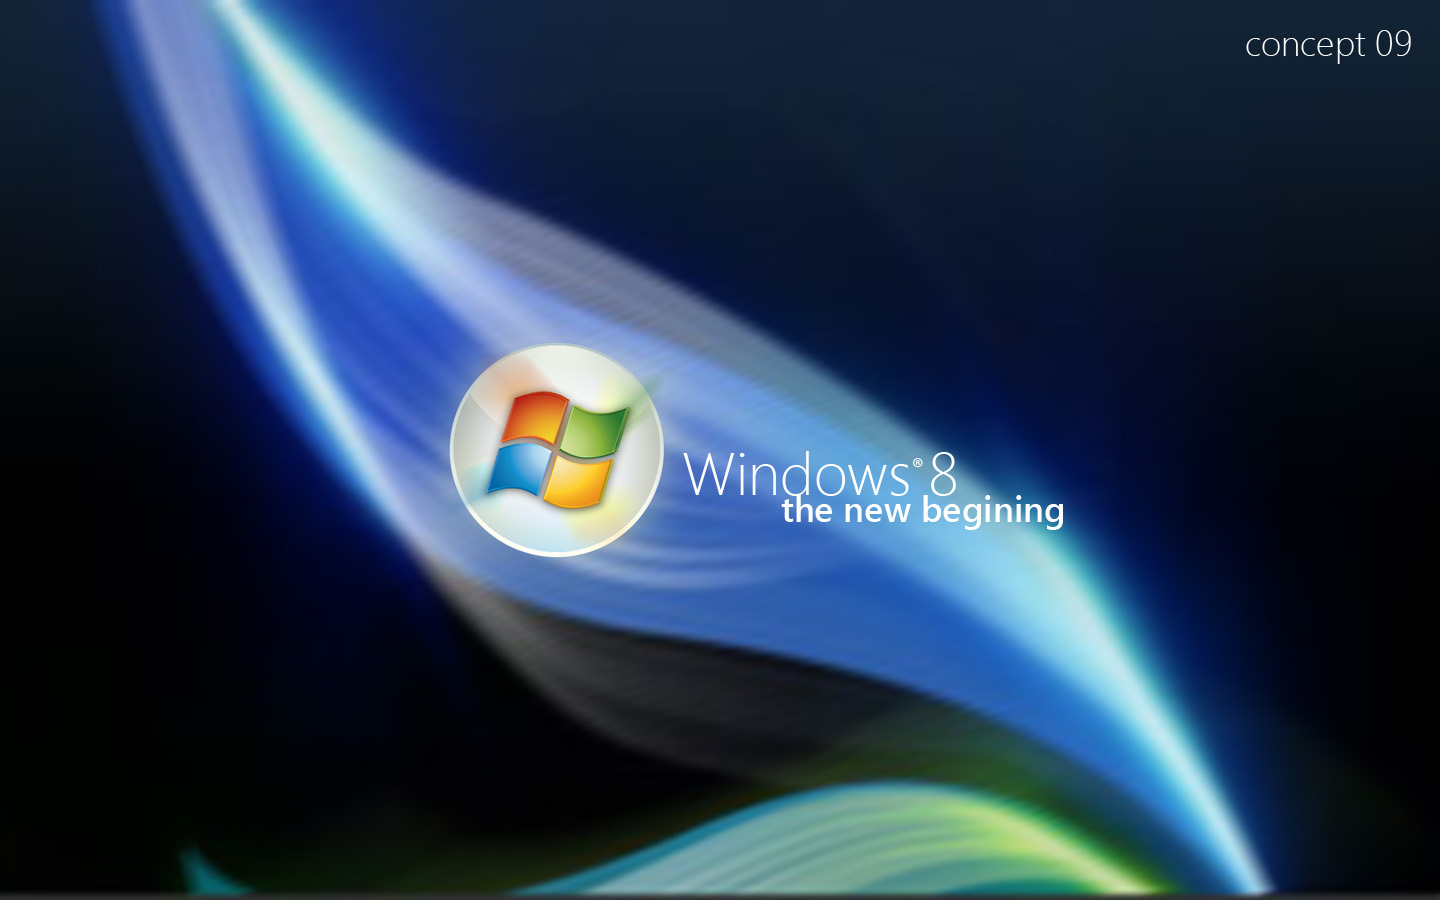 Merubah Tampilan Windows 7 dan Windows XP Jadi Windows 8 Ncofies